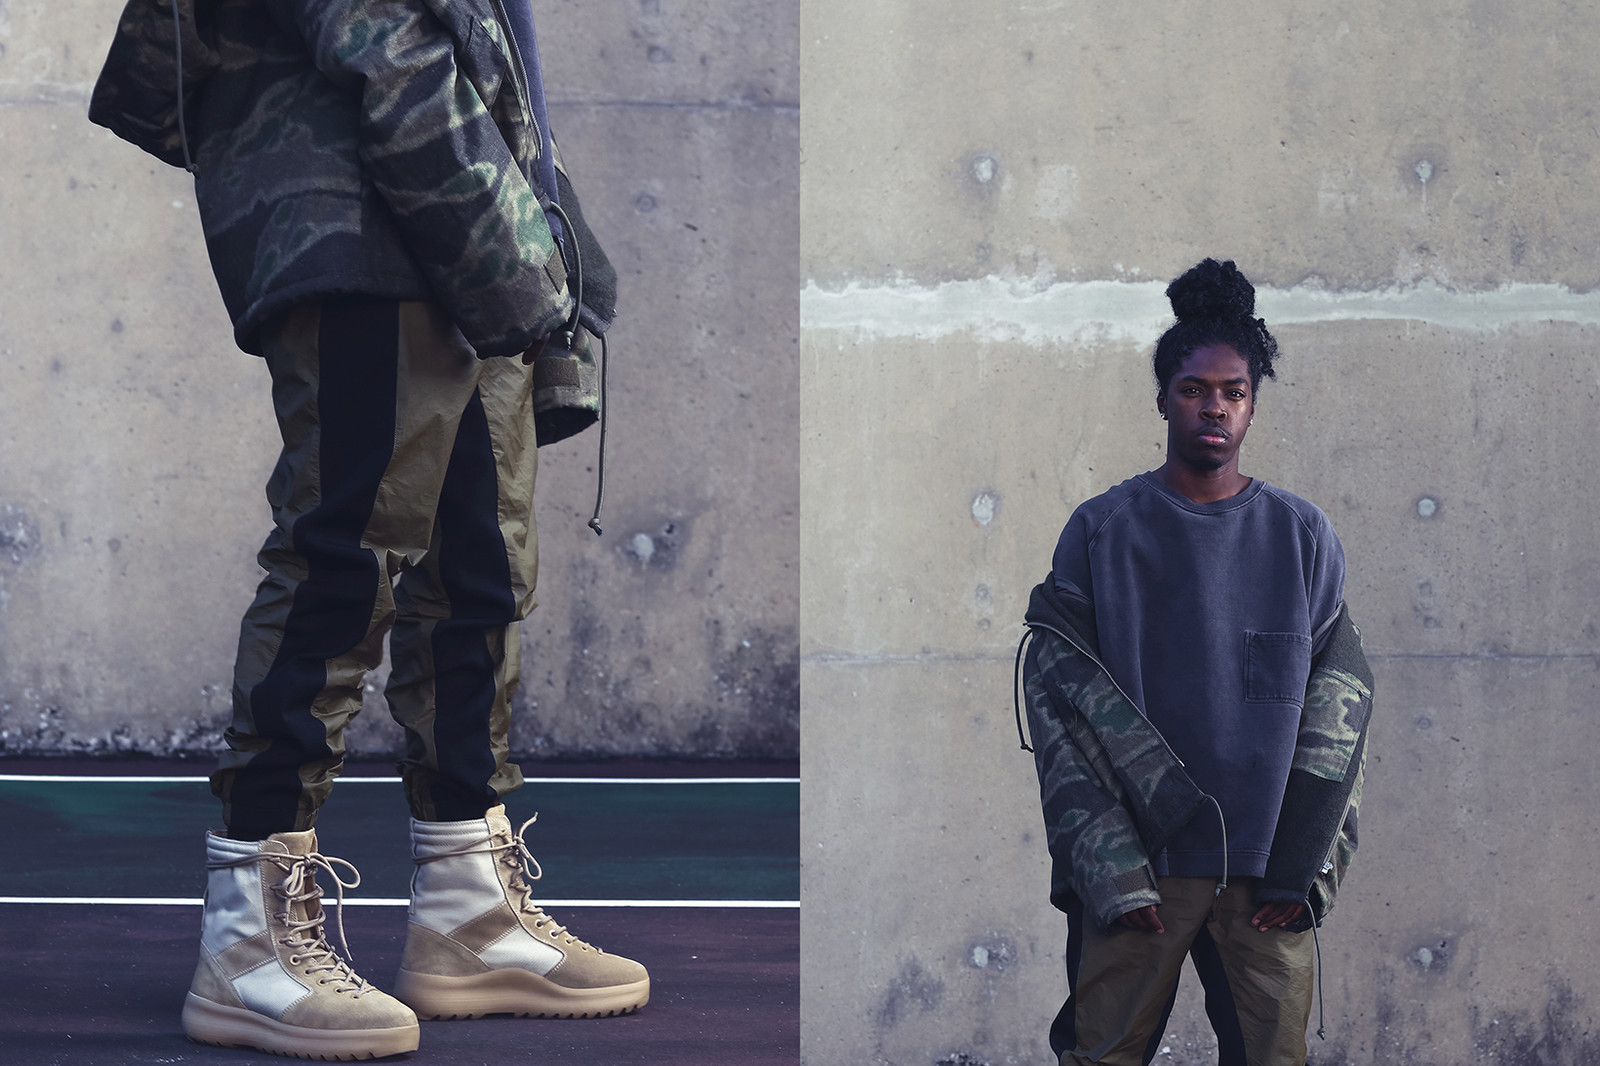 yeezy season kanye west lookbooks fashion streetwear yeezus